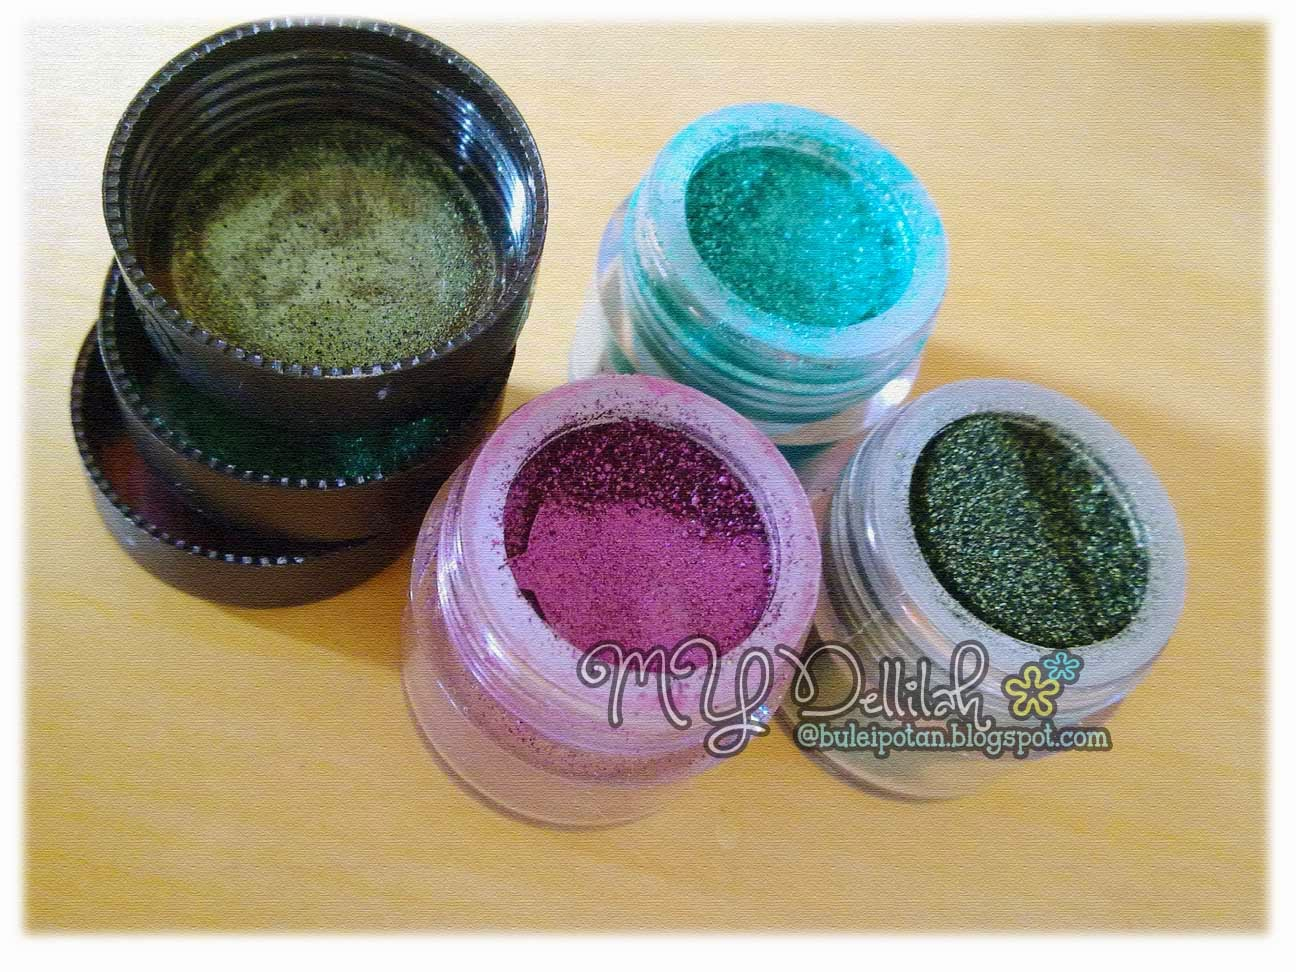 Sleek Eye Dust - Eyeshadow dalam POT